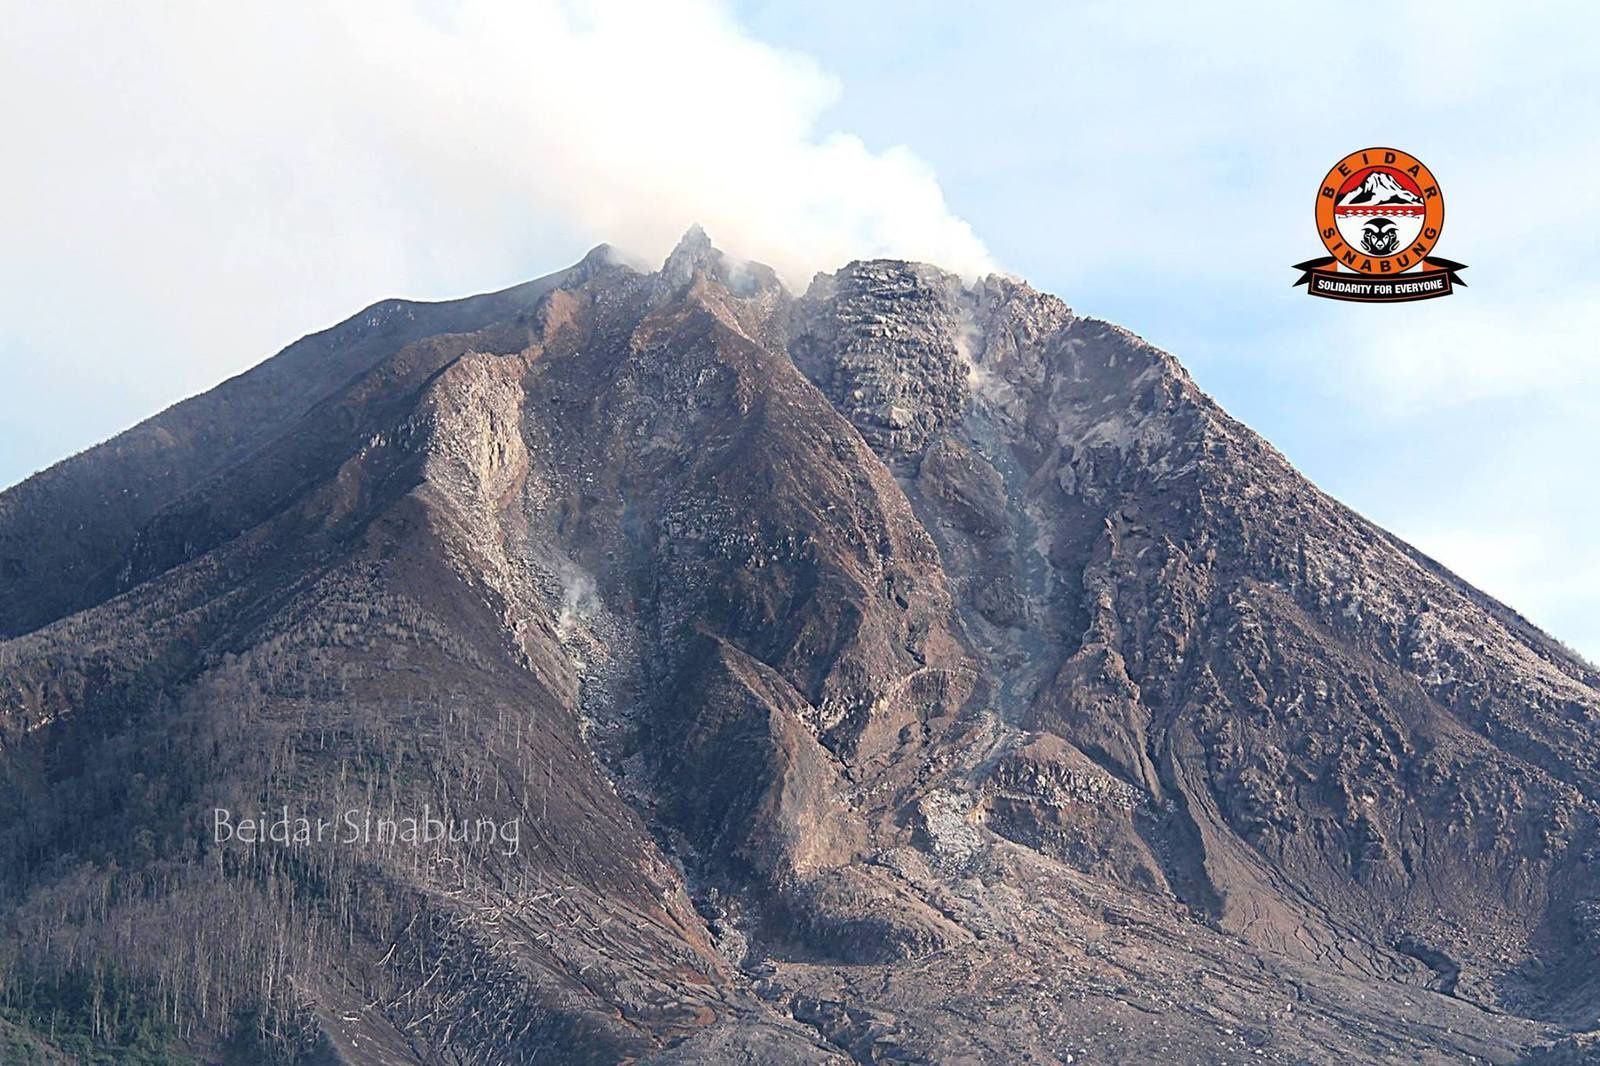 Sinabung - the top, the spines and the lava lobe - photo 03.06.2015 / Beidar Sinabung